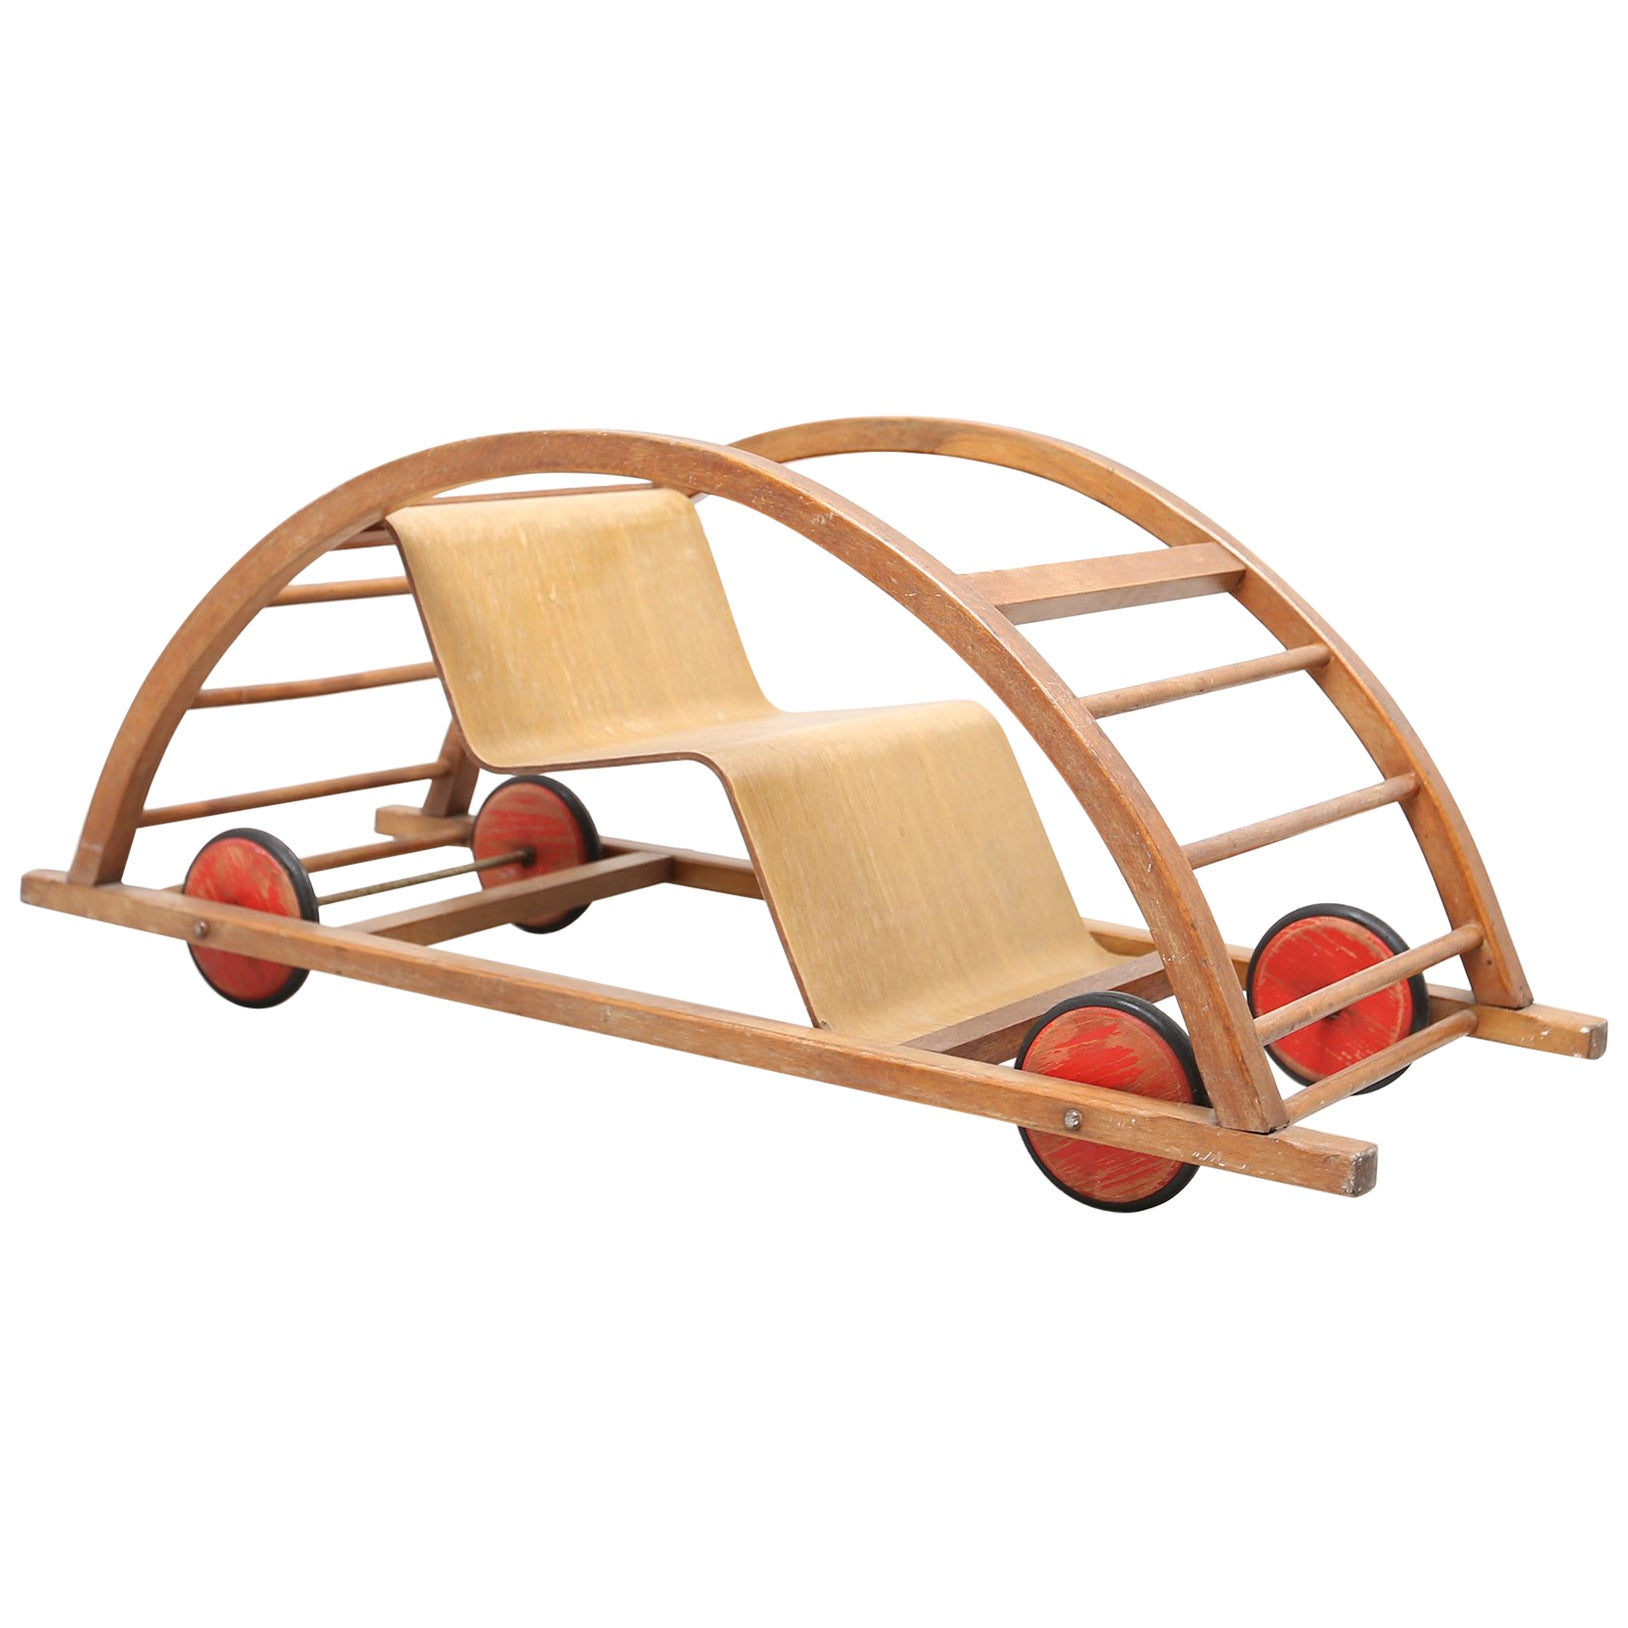 Hans Brockhage Schaukelwagen Swing and Race Car Toy